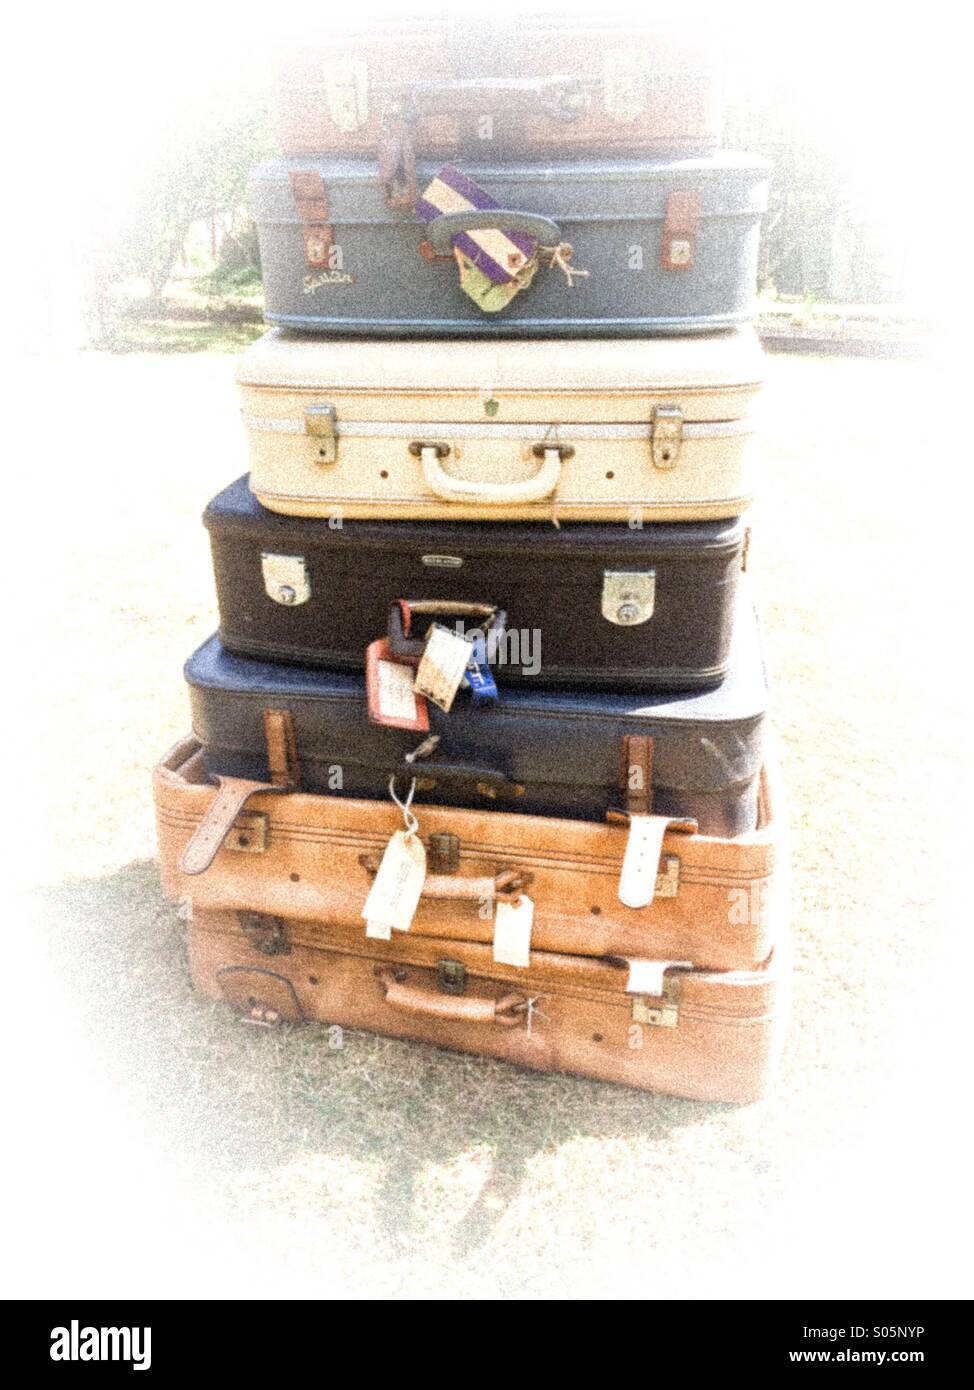 Pile of suitcases shabby chic storage solution - Stock Image